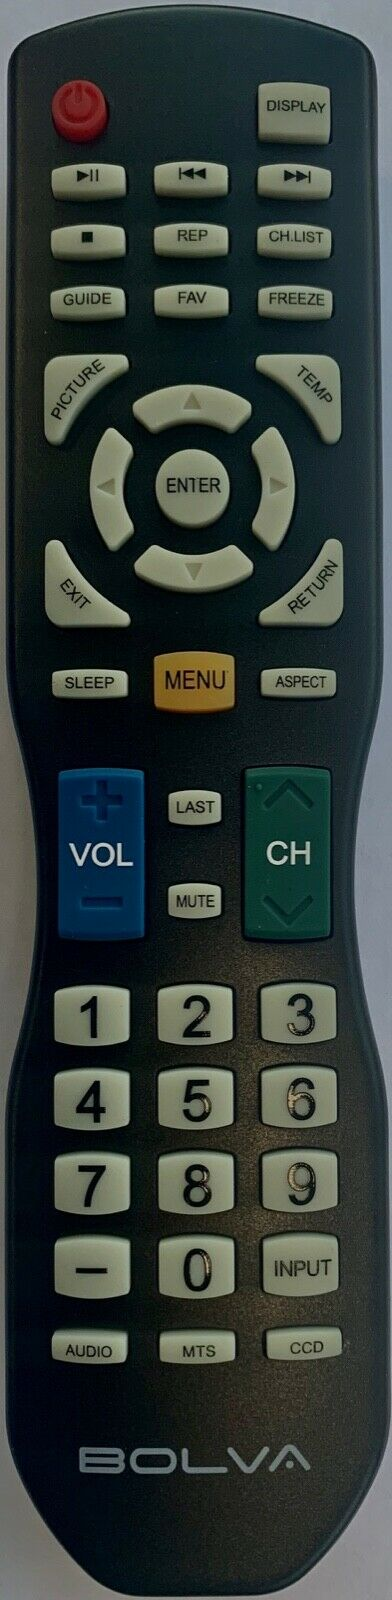 new tv remote ld200 for 40bl00h7 49bl00h7